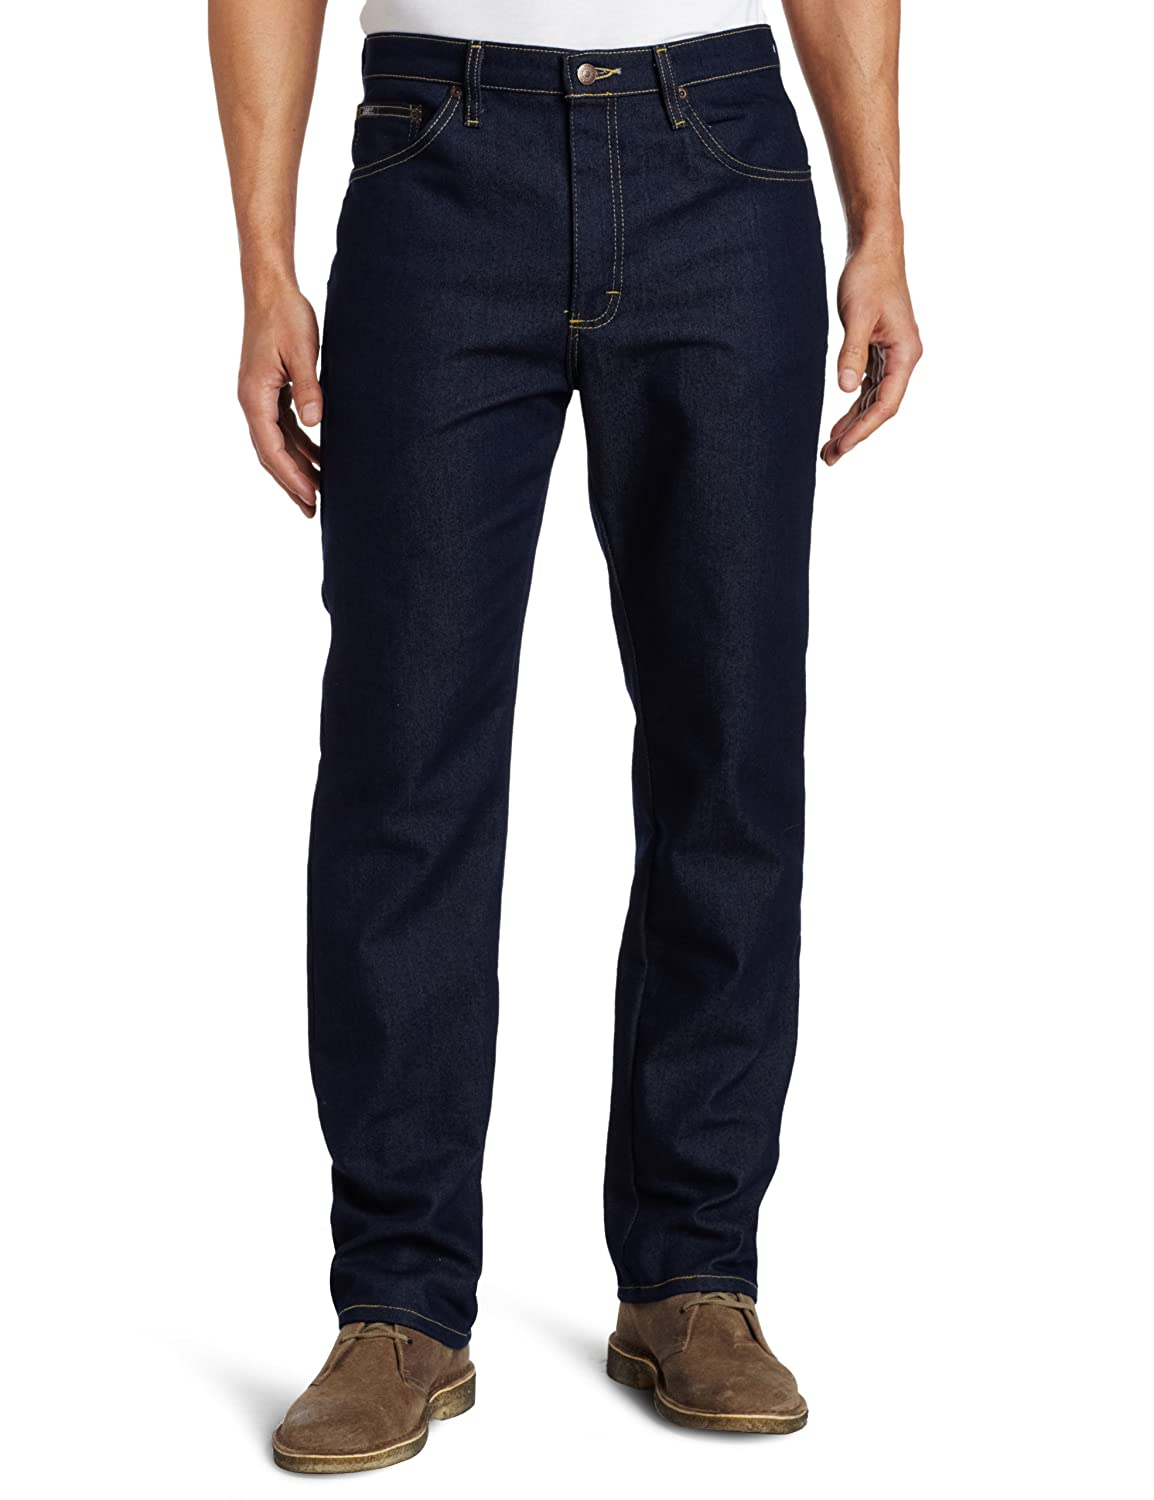 Lee Mens Regular Fit Stretch Jeans - Indigo